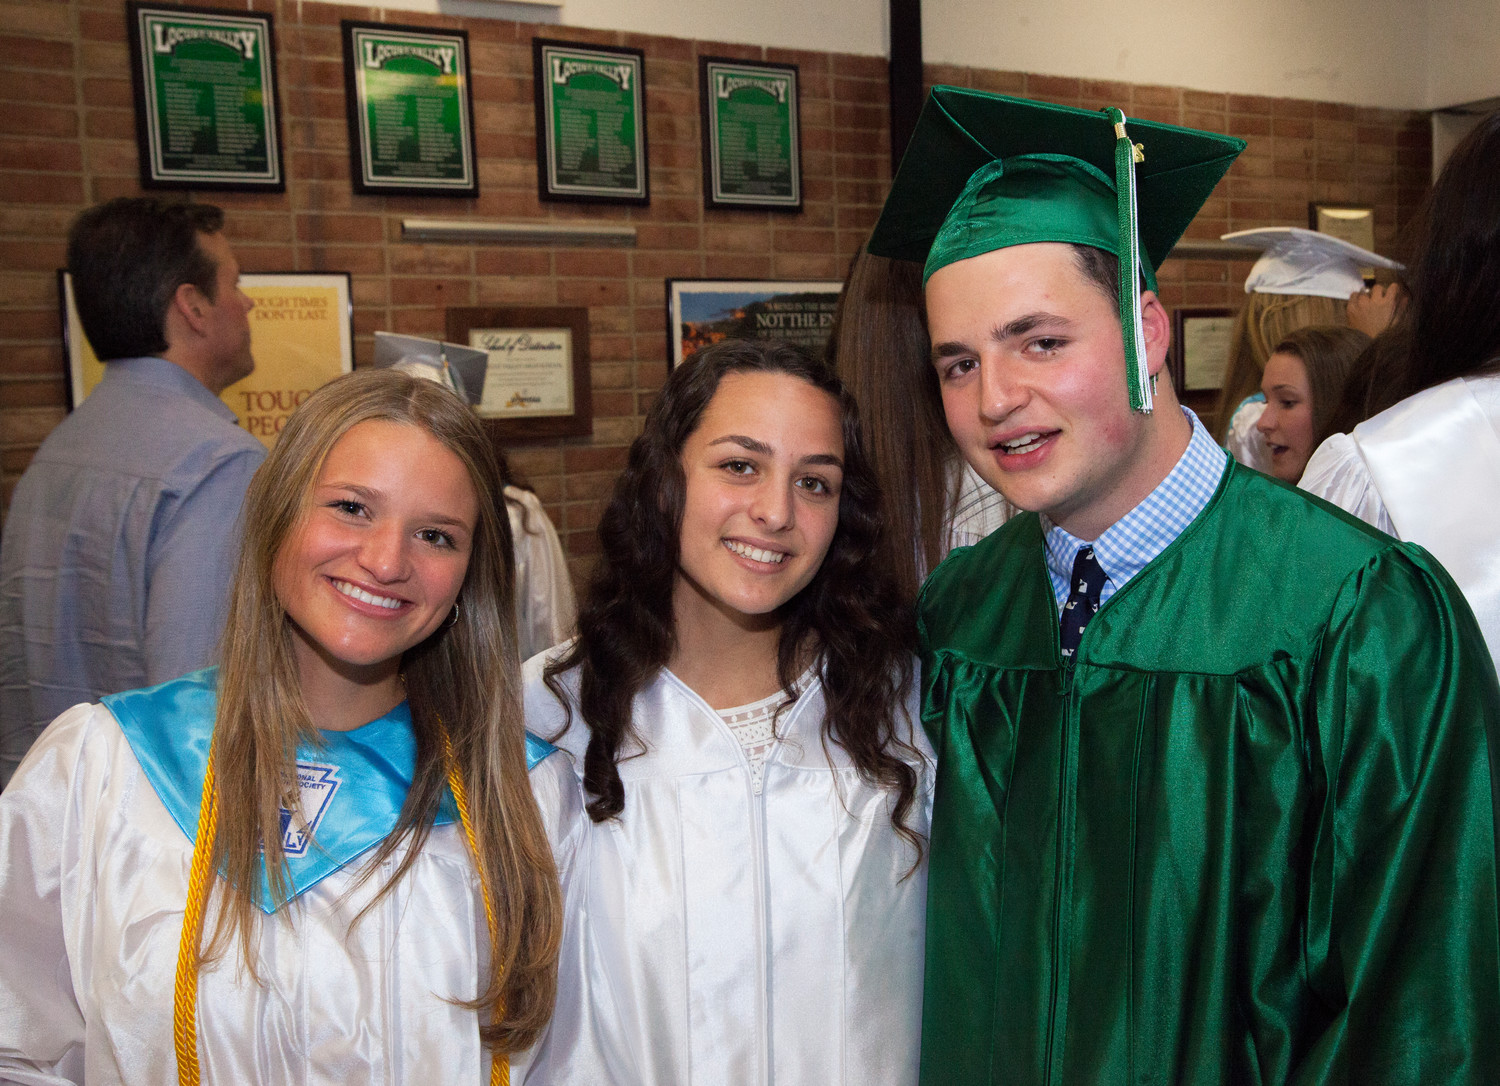 Graduates from far left, Carrie Willcochs, Guilianna Parisi and Harris Torossian savored the moment on Saturday.